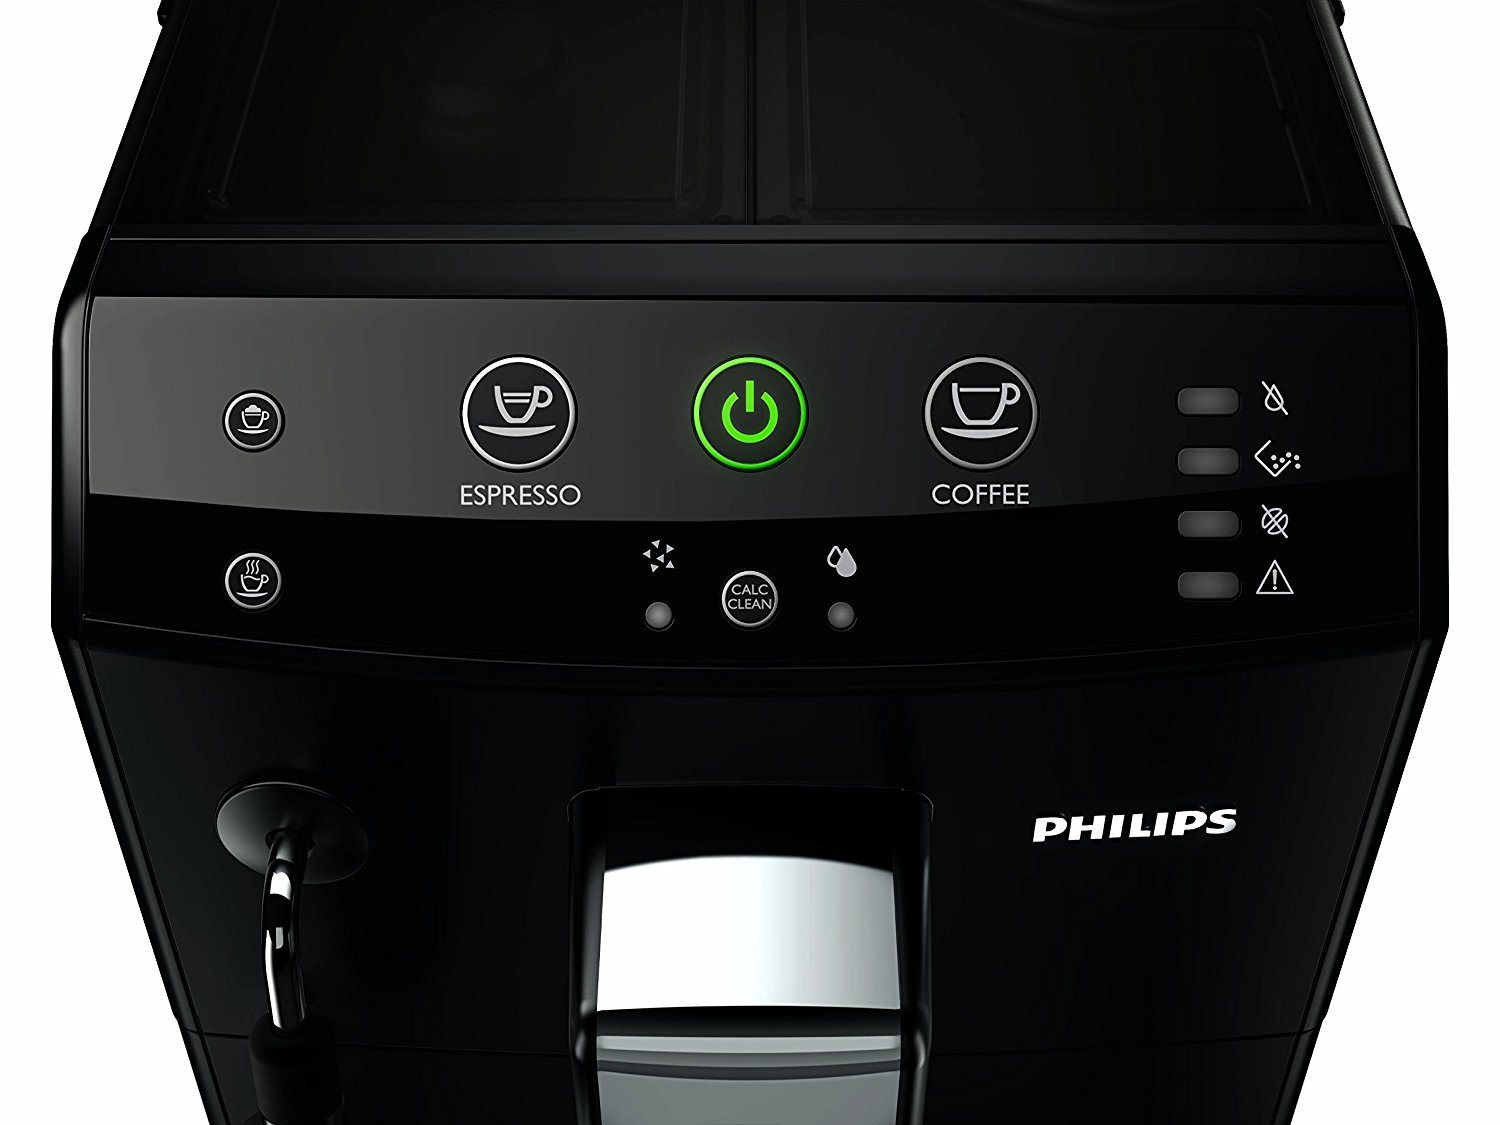 Philips_HD8824-01_serie_3000_expresso_automatique_broyeur_boutons_led_retroeclaires